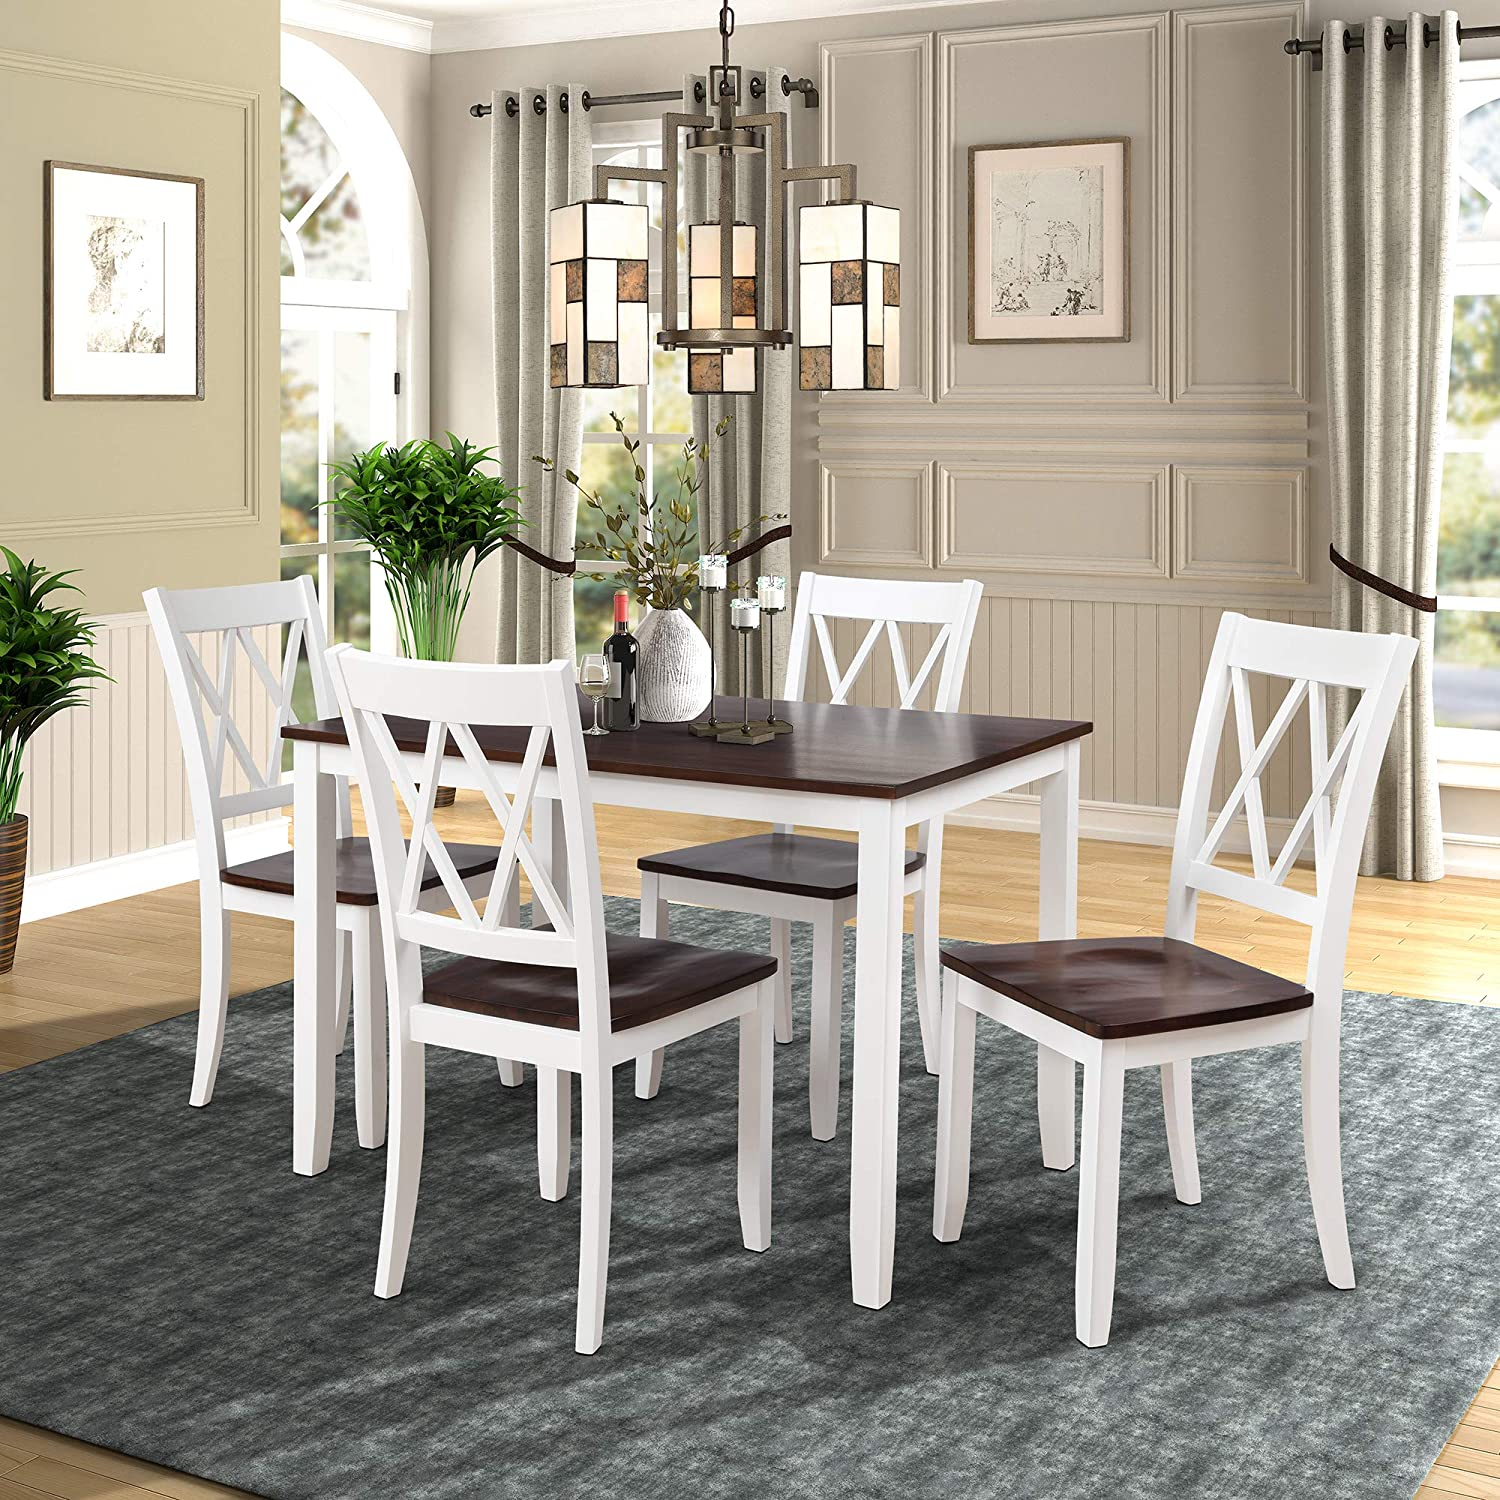 Amazon Com 5 Piece Dining Table Set Home Kitchen Table And Chairs Wood Dining Set Black White White Table Chair Sets